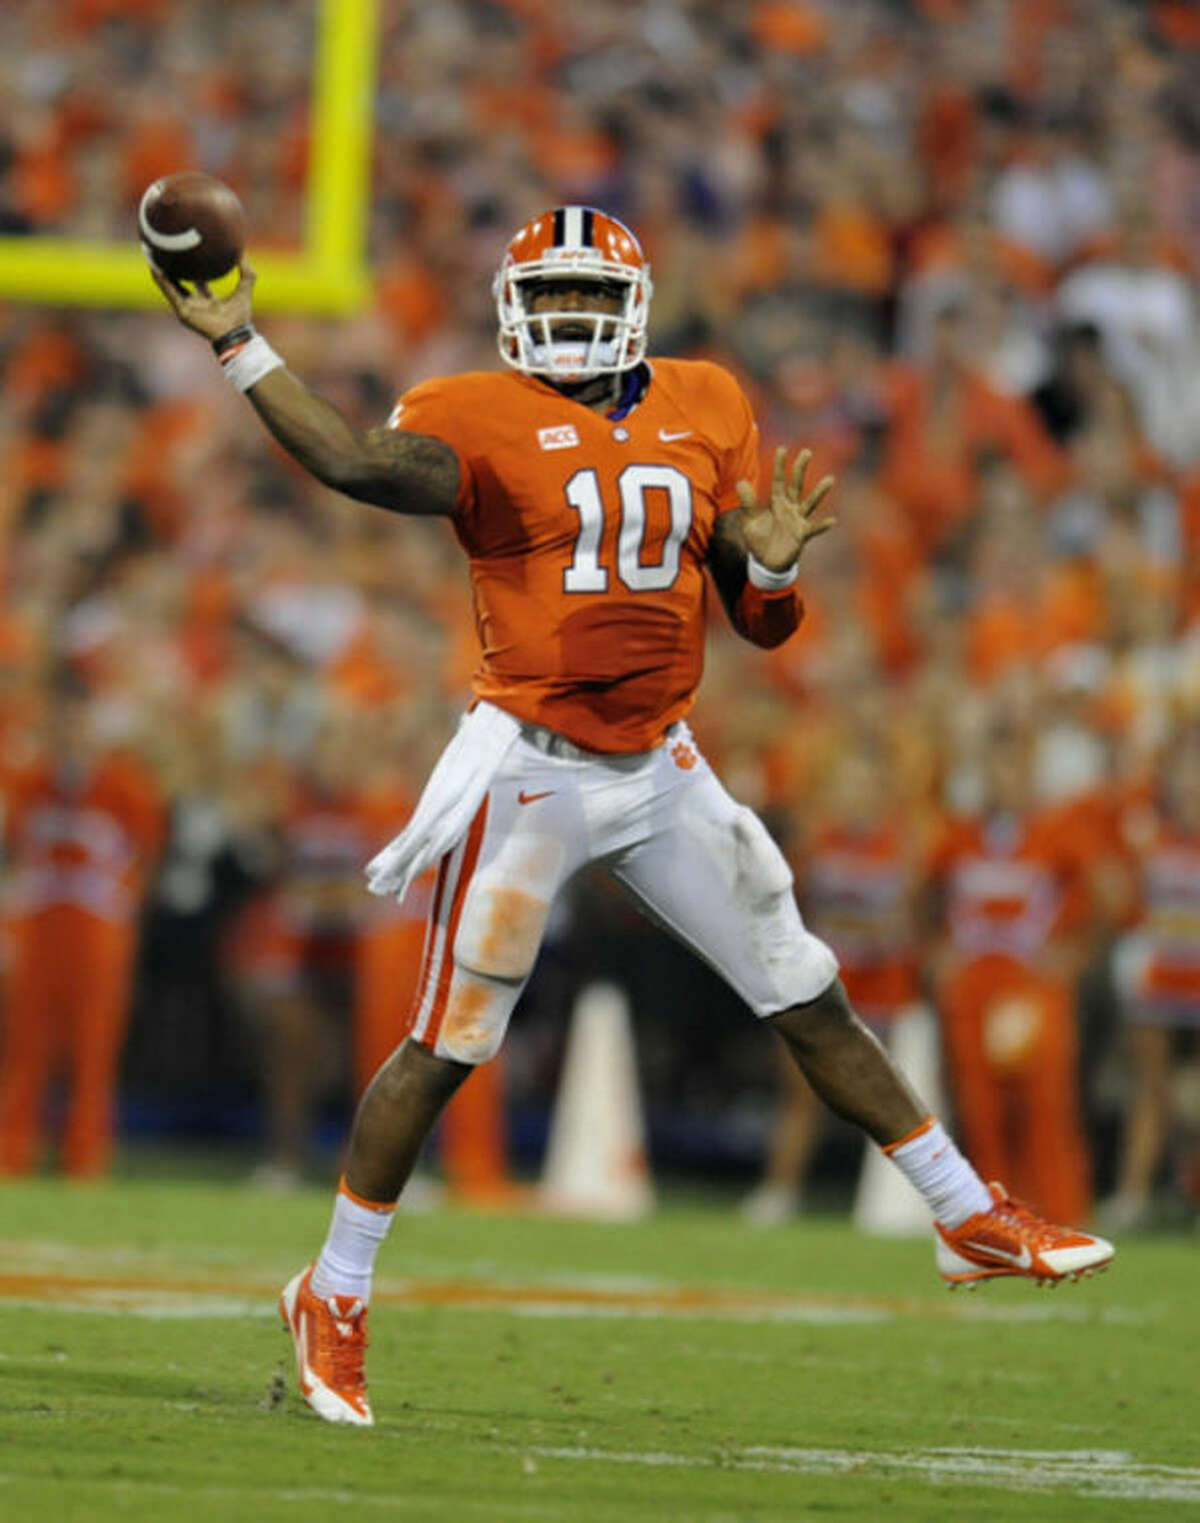 File-This Aug. 31, 2013 file photo shows Clemson quarterback Tajh Boyd throwing a pass during the first half of an NCAA college football game against Georgia at Memorial Stadium in Clemson, S.C. There's not an enormous difference between Jameis Winston of Florida State and Boyd. At least not to a couple of former NFL executives. Sam Wyche, former Cincinnati Bengals and Tampa Bay Buccaneers coach, says Boyd, a senior, has the desired combination of fundamentals and veteran leadership qualities. (AP Photo/Richard Shiro, File)